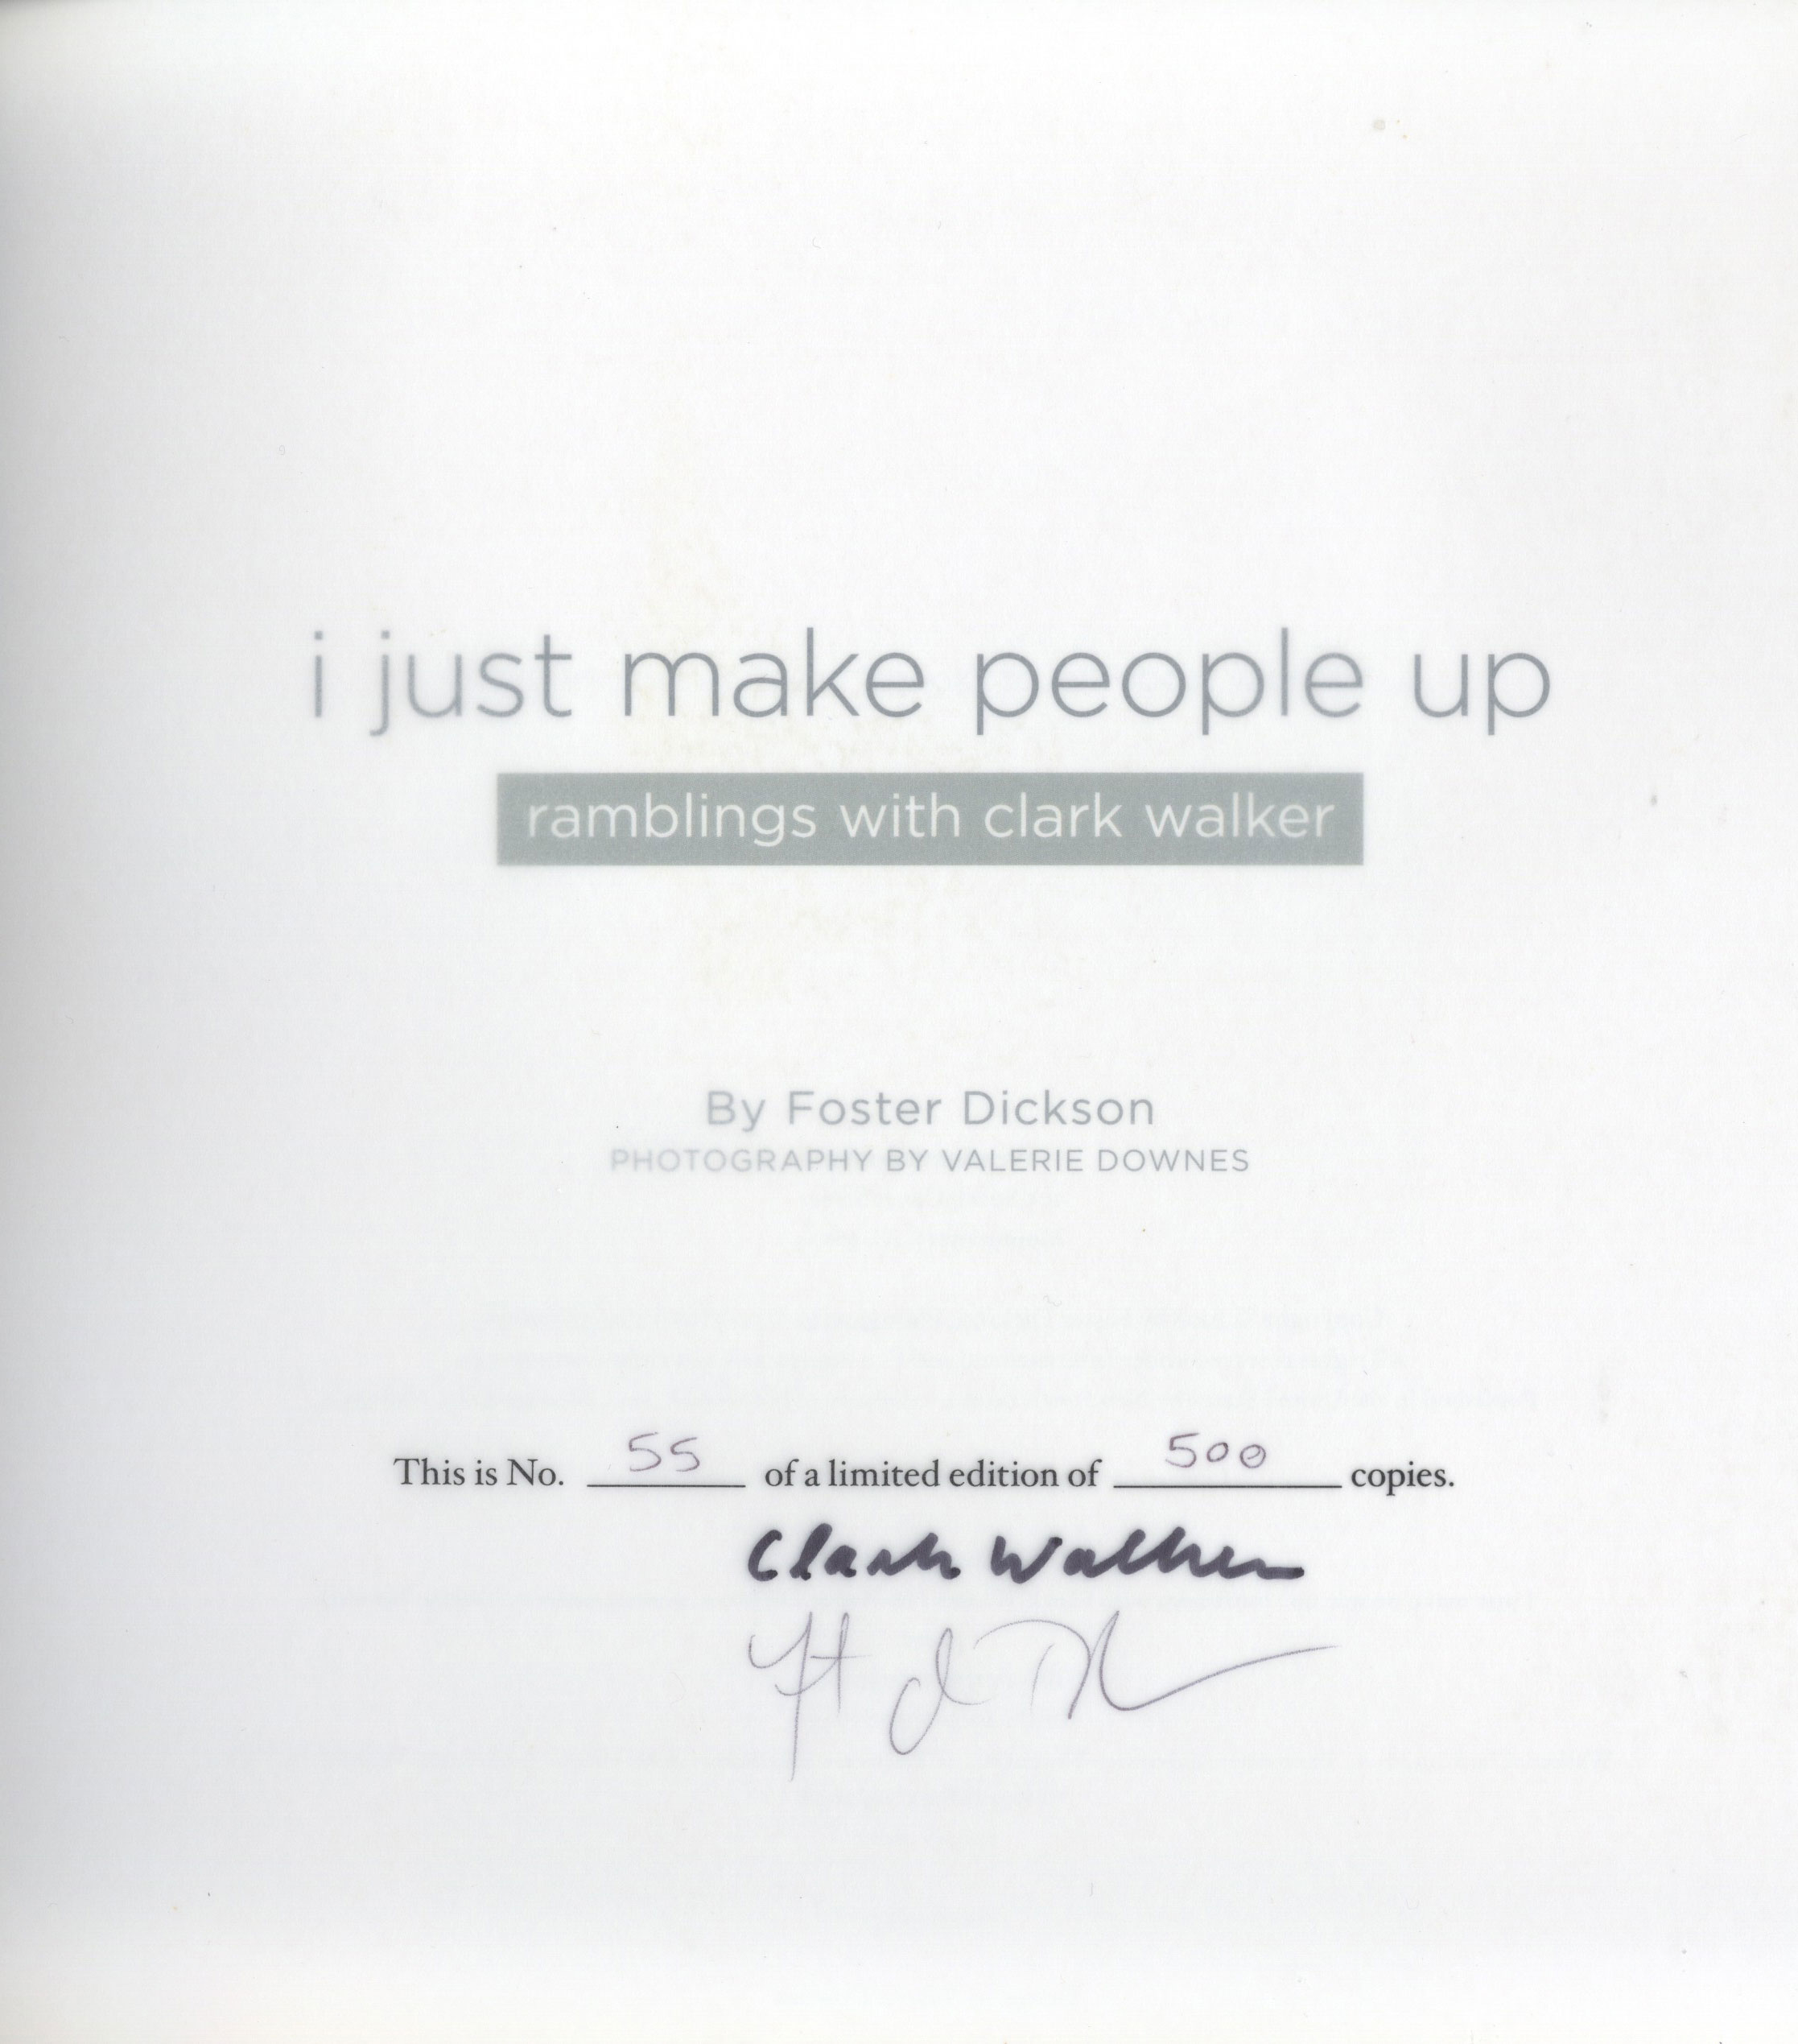 I Just Make People Up - limited edition